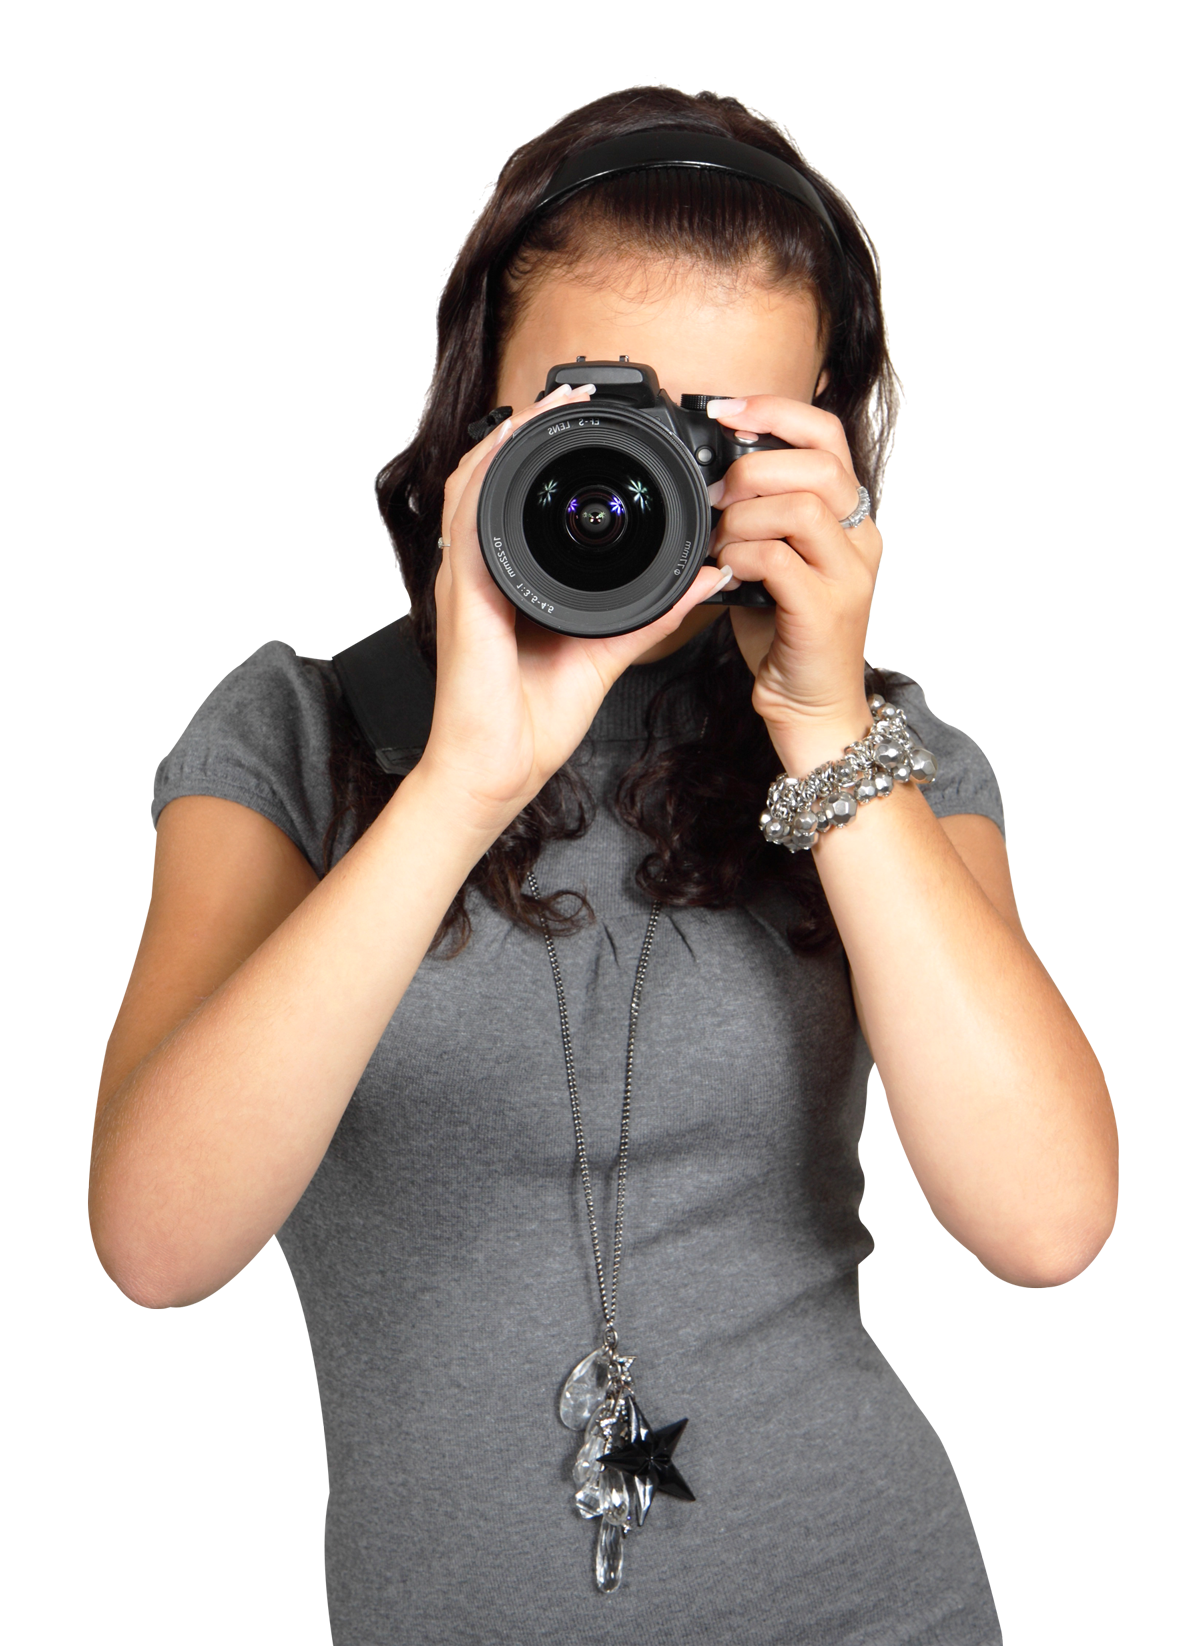 Young Woman with Digital Photo Camera